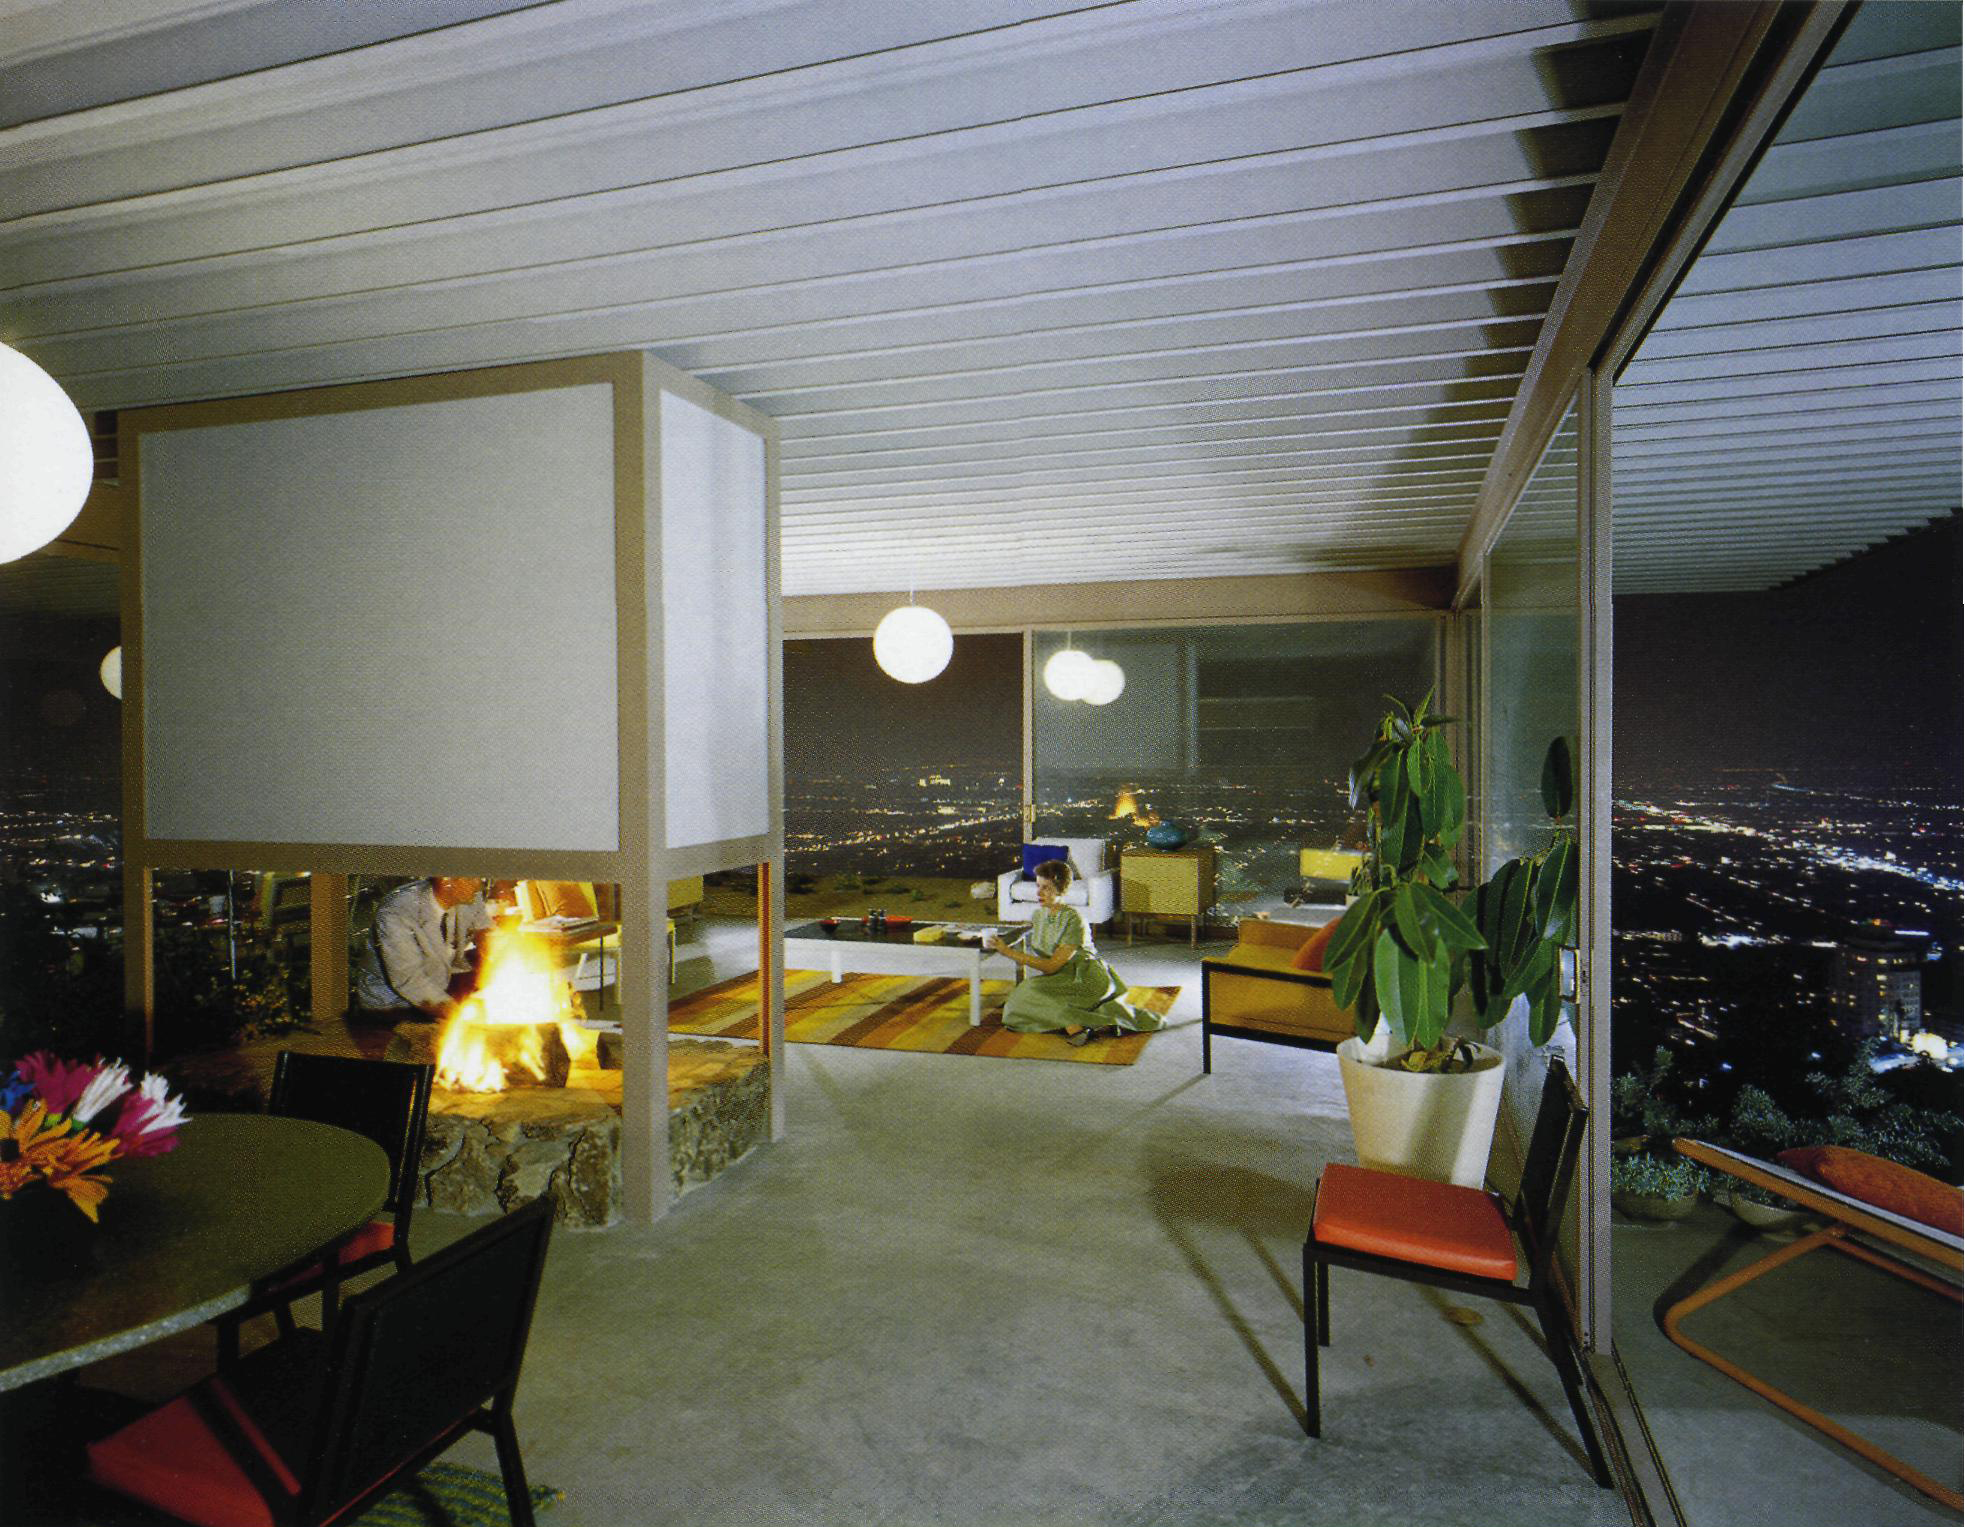 case study house 22 for sale